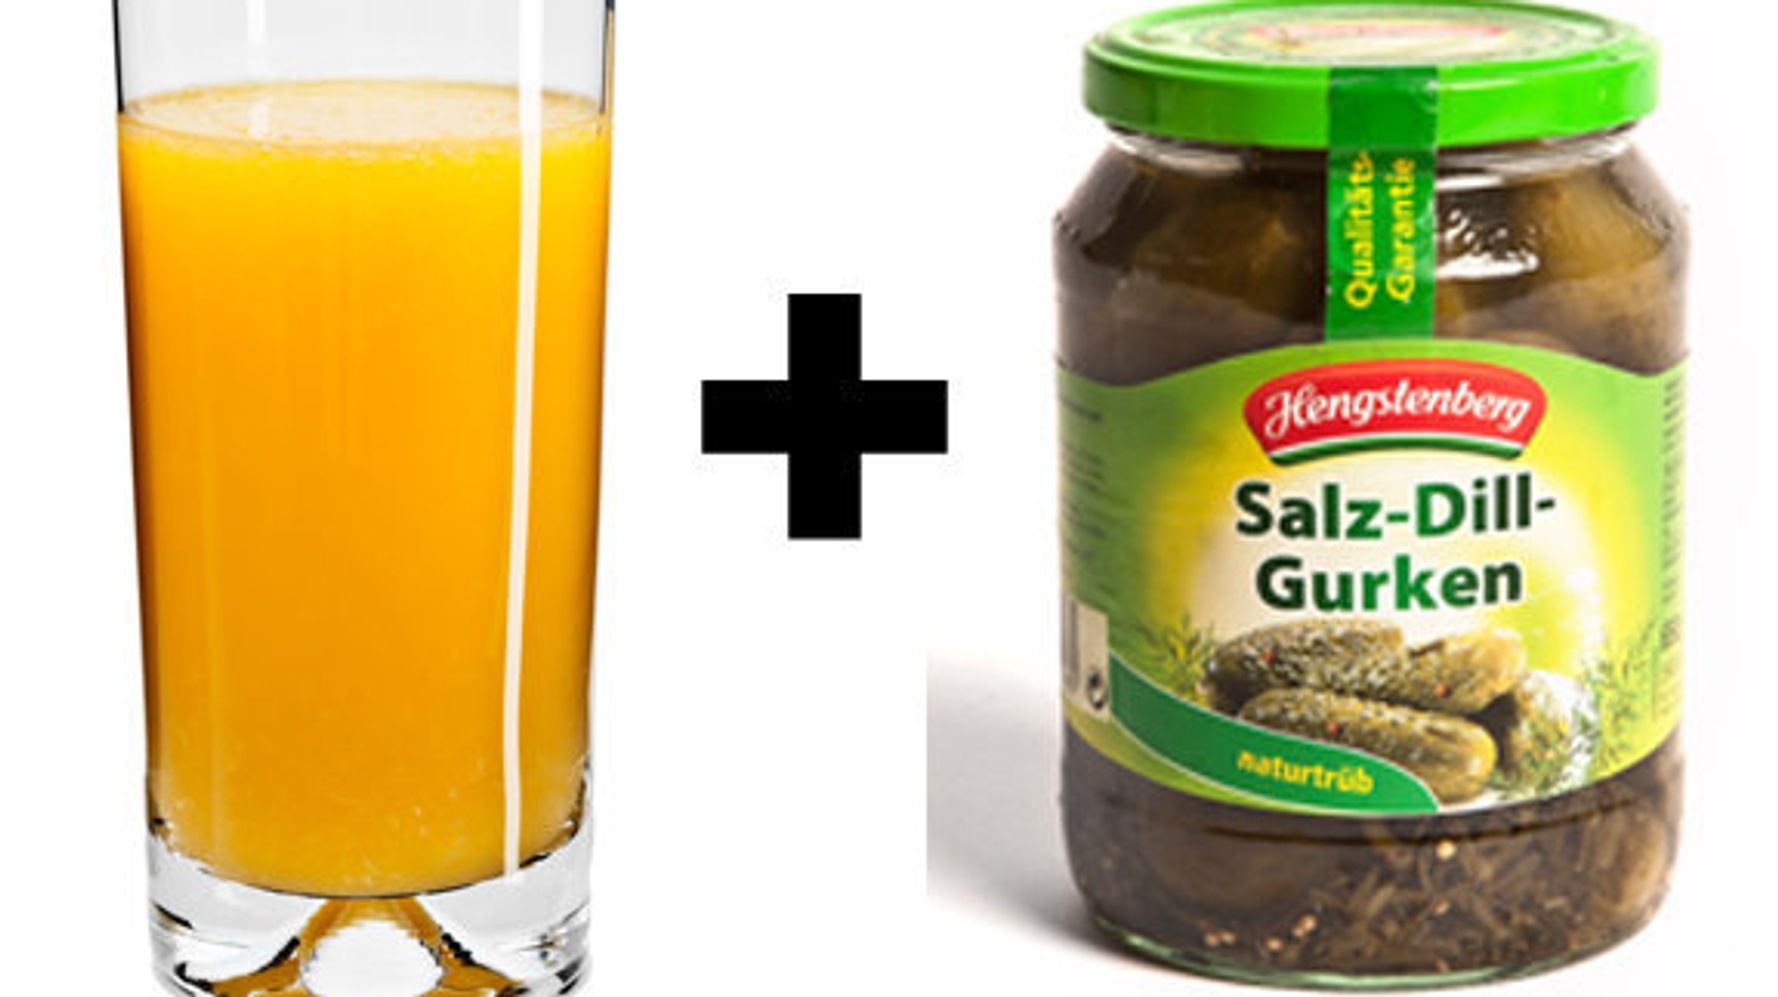 The Most Deliciously Weird Food Combinations You've Admitted